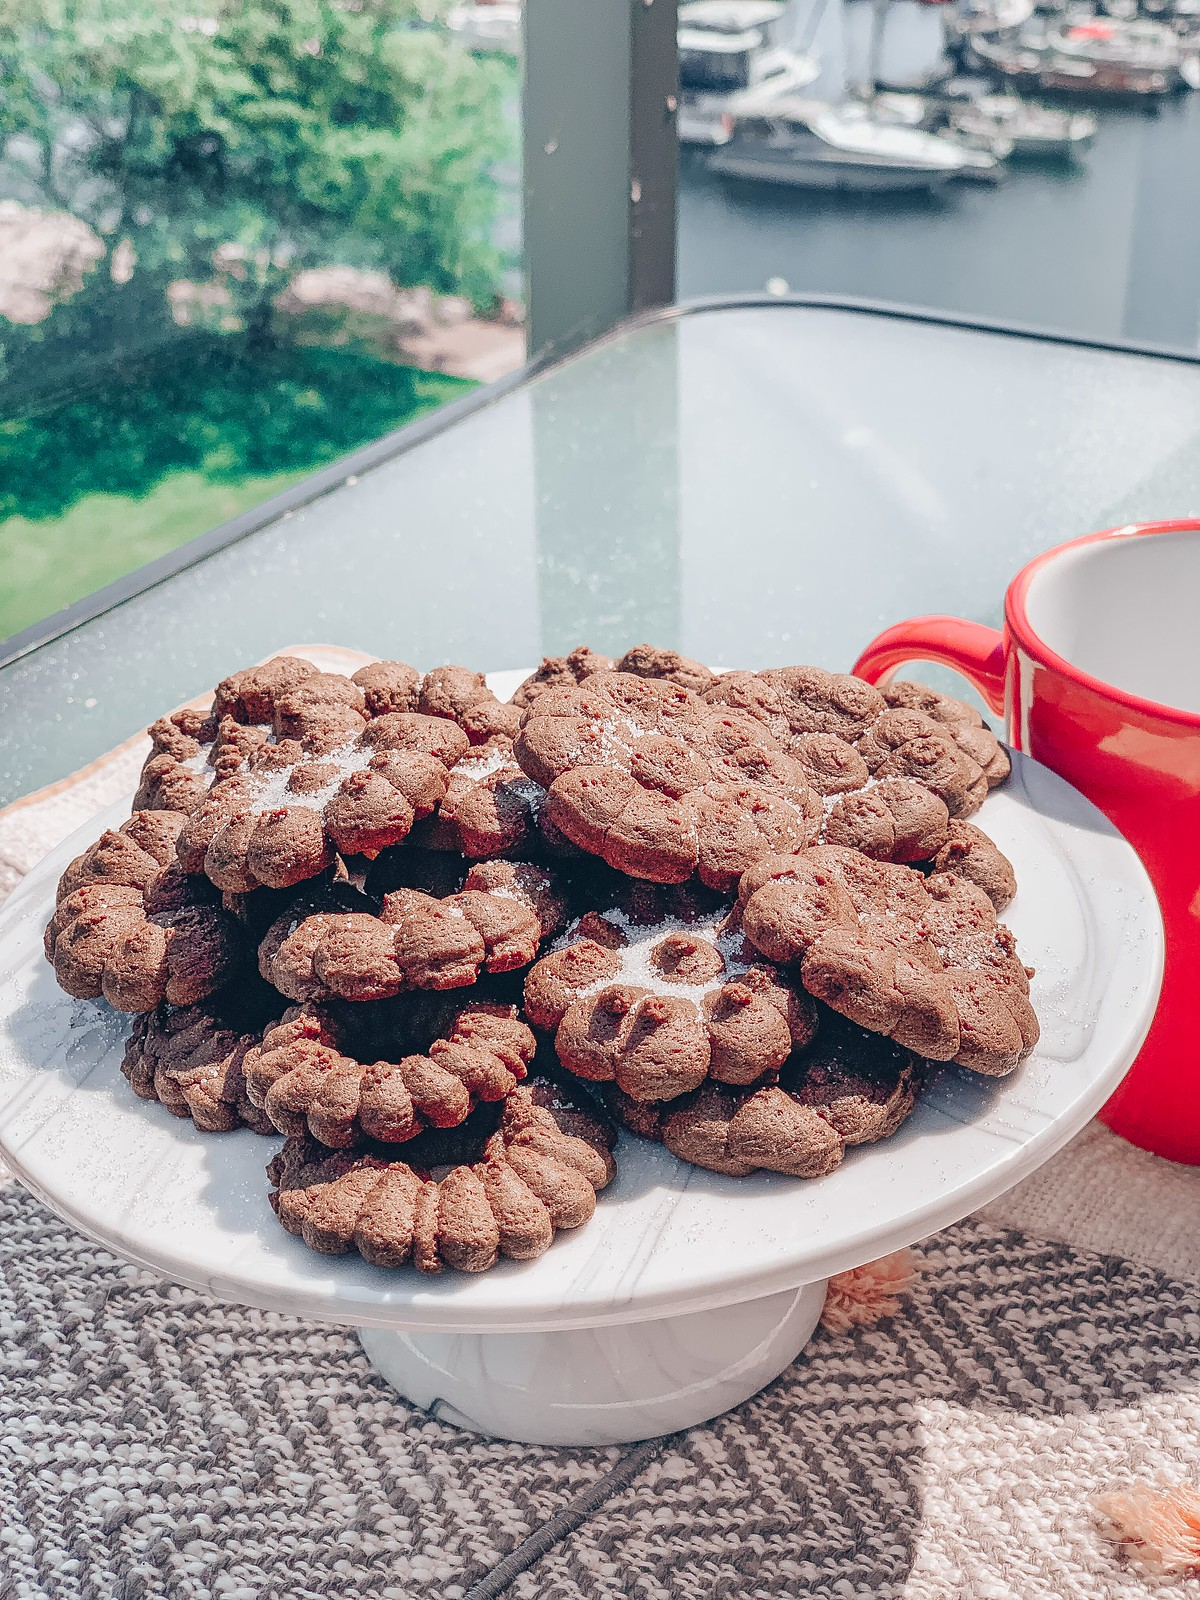 Chocolate & Coffee Pressed Cookies